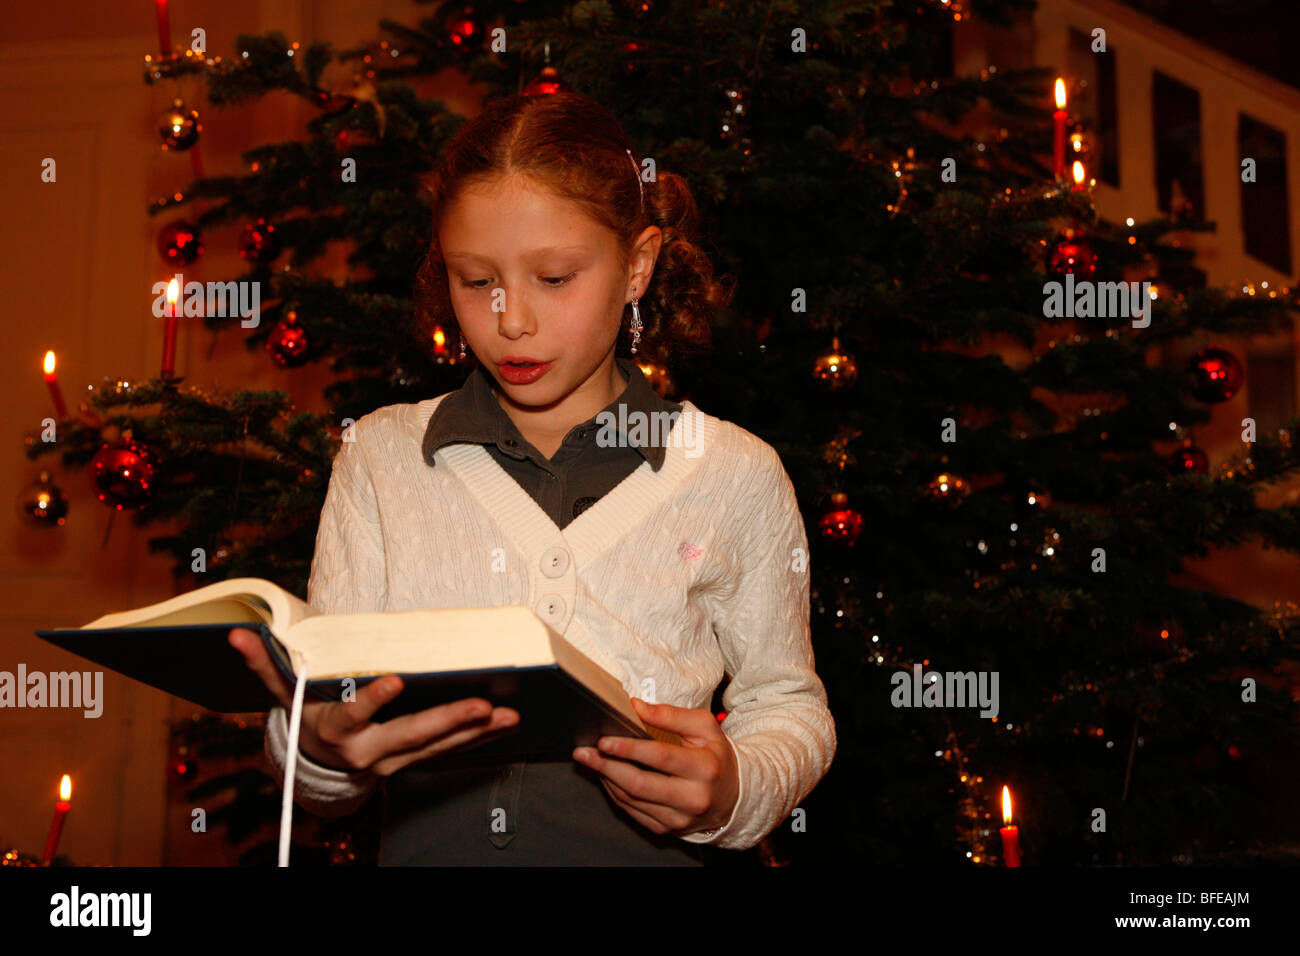 Christmas Day In France.France Bible Reading On Christmas Day Stock Photo 26745900